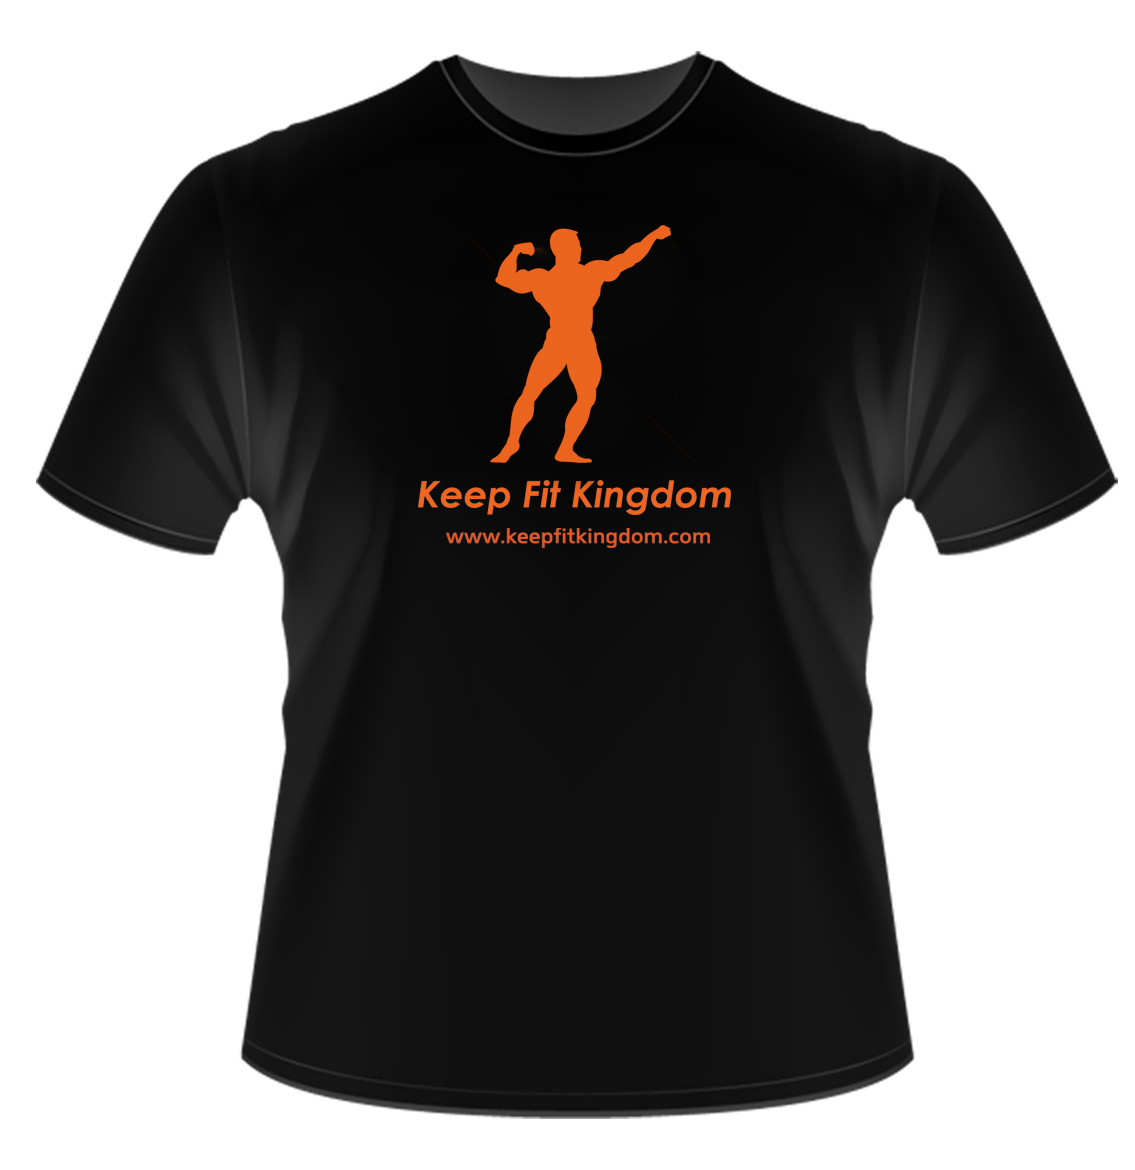 Keep Fit Kingdom T-Shirt - Male